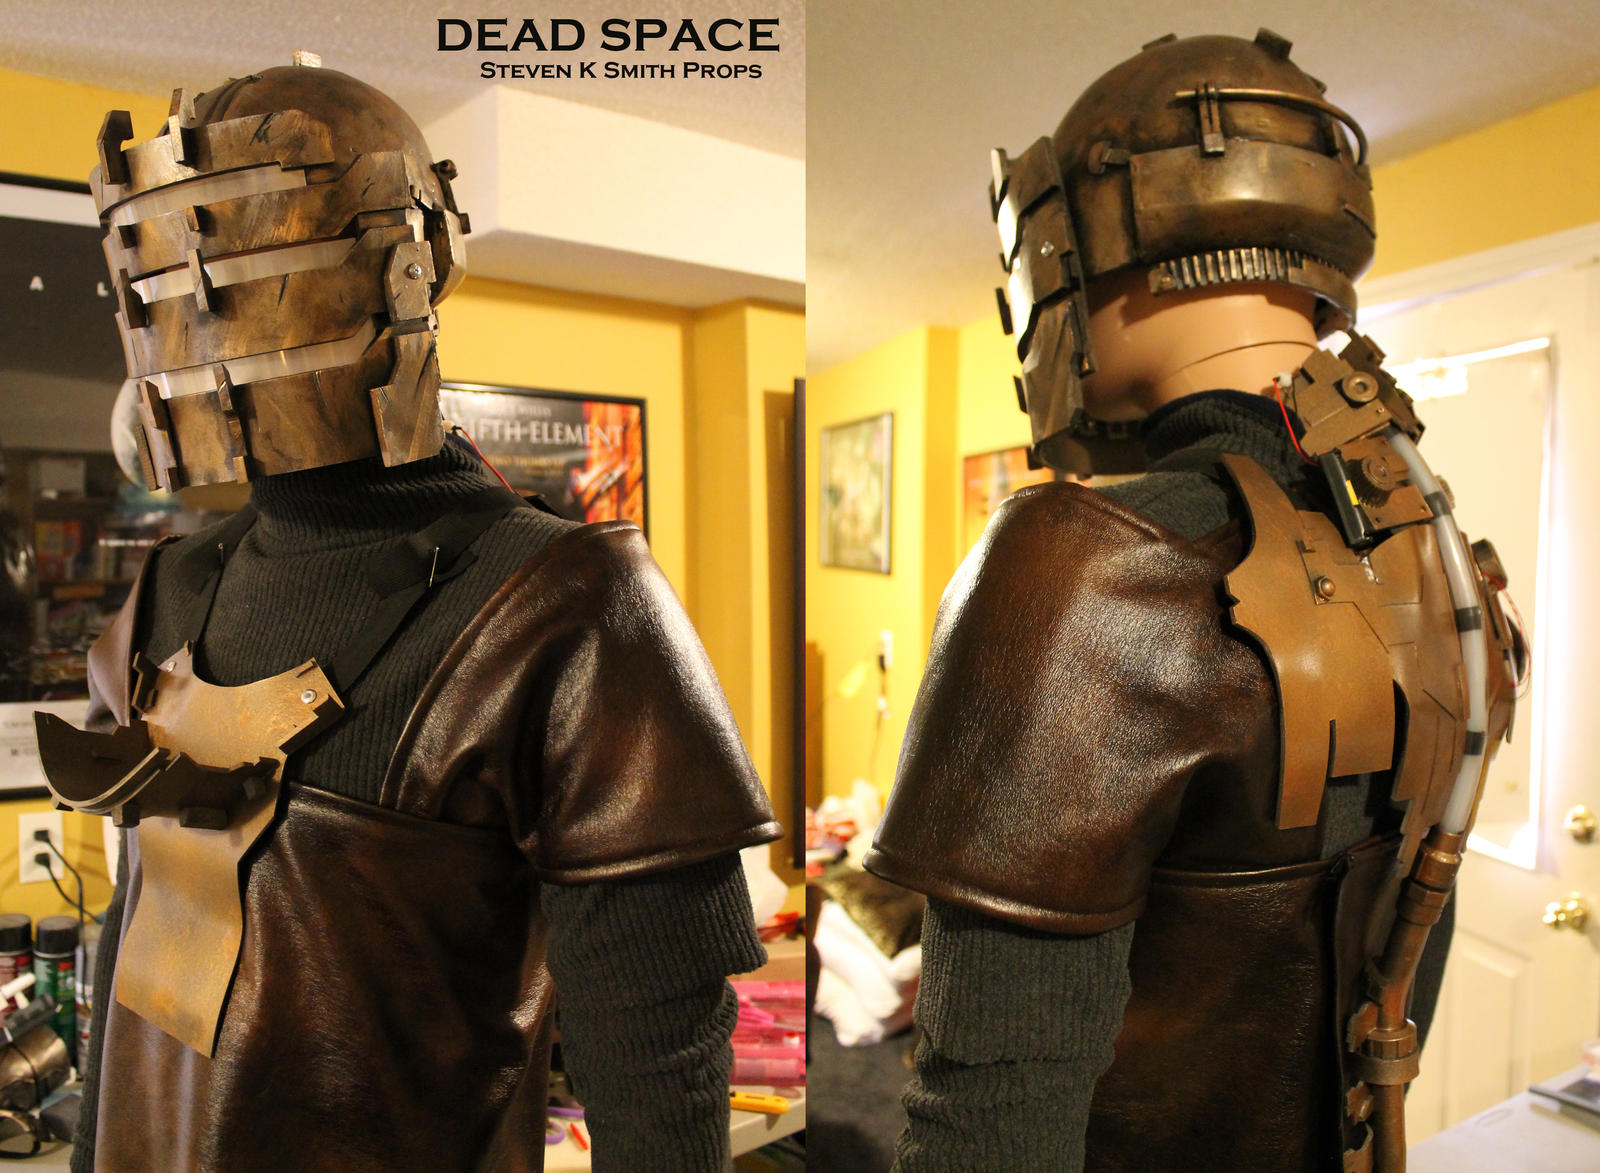 DEAD SPACE - Cosplay WIP under suit by SKSProps